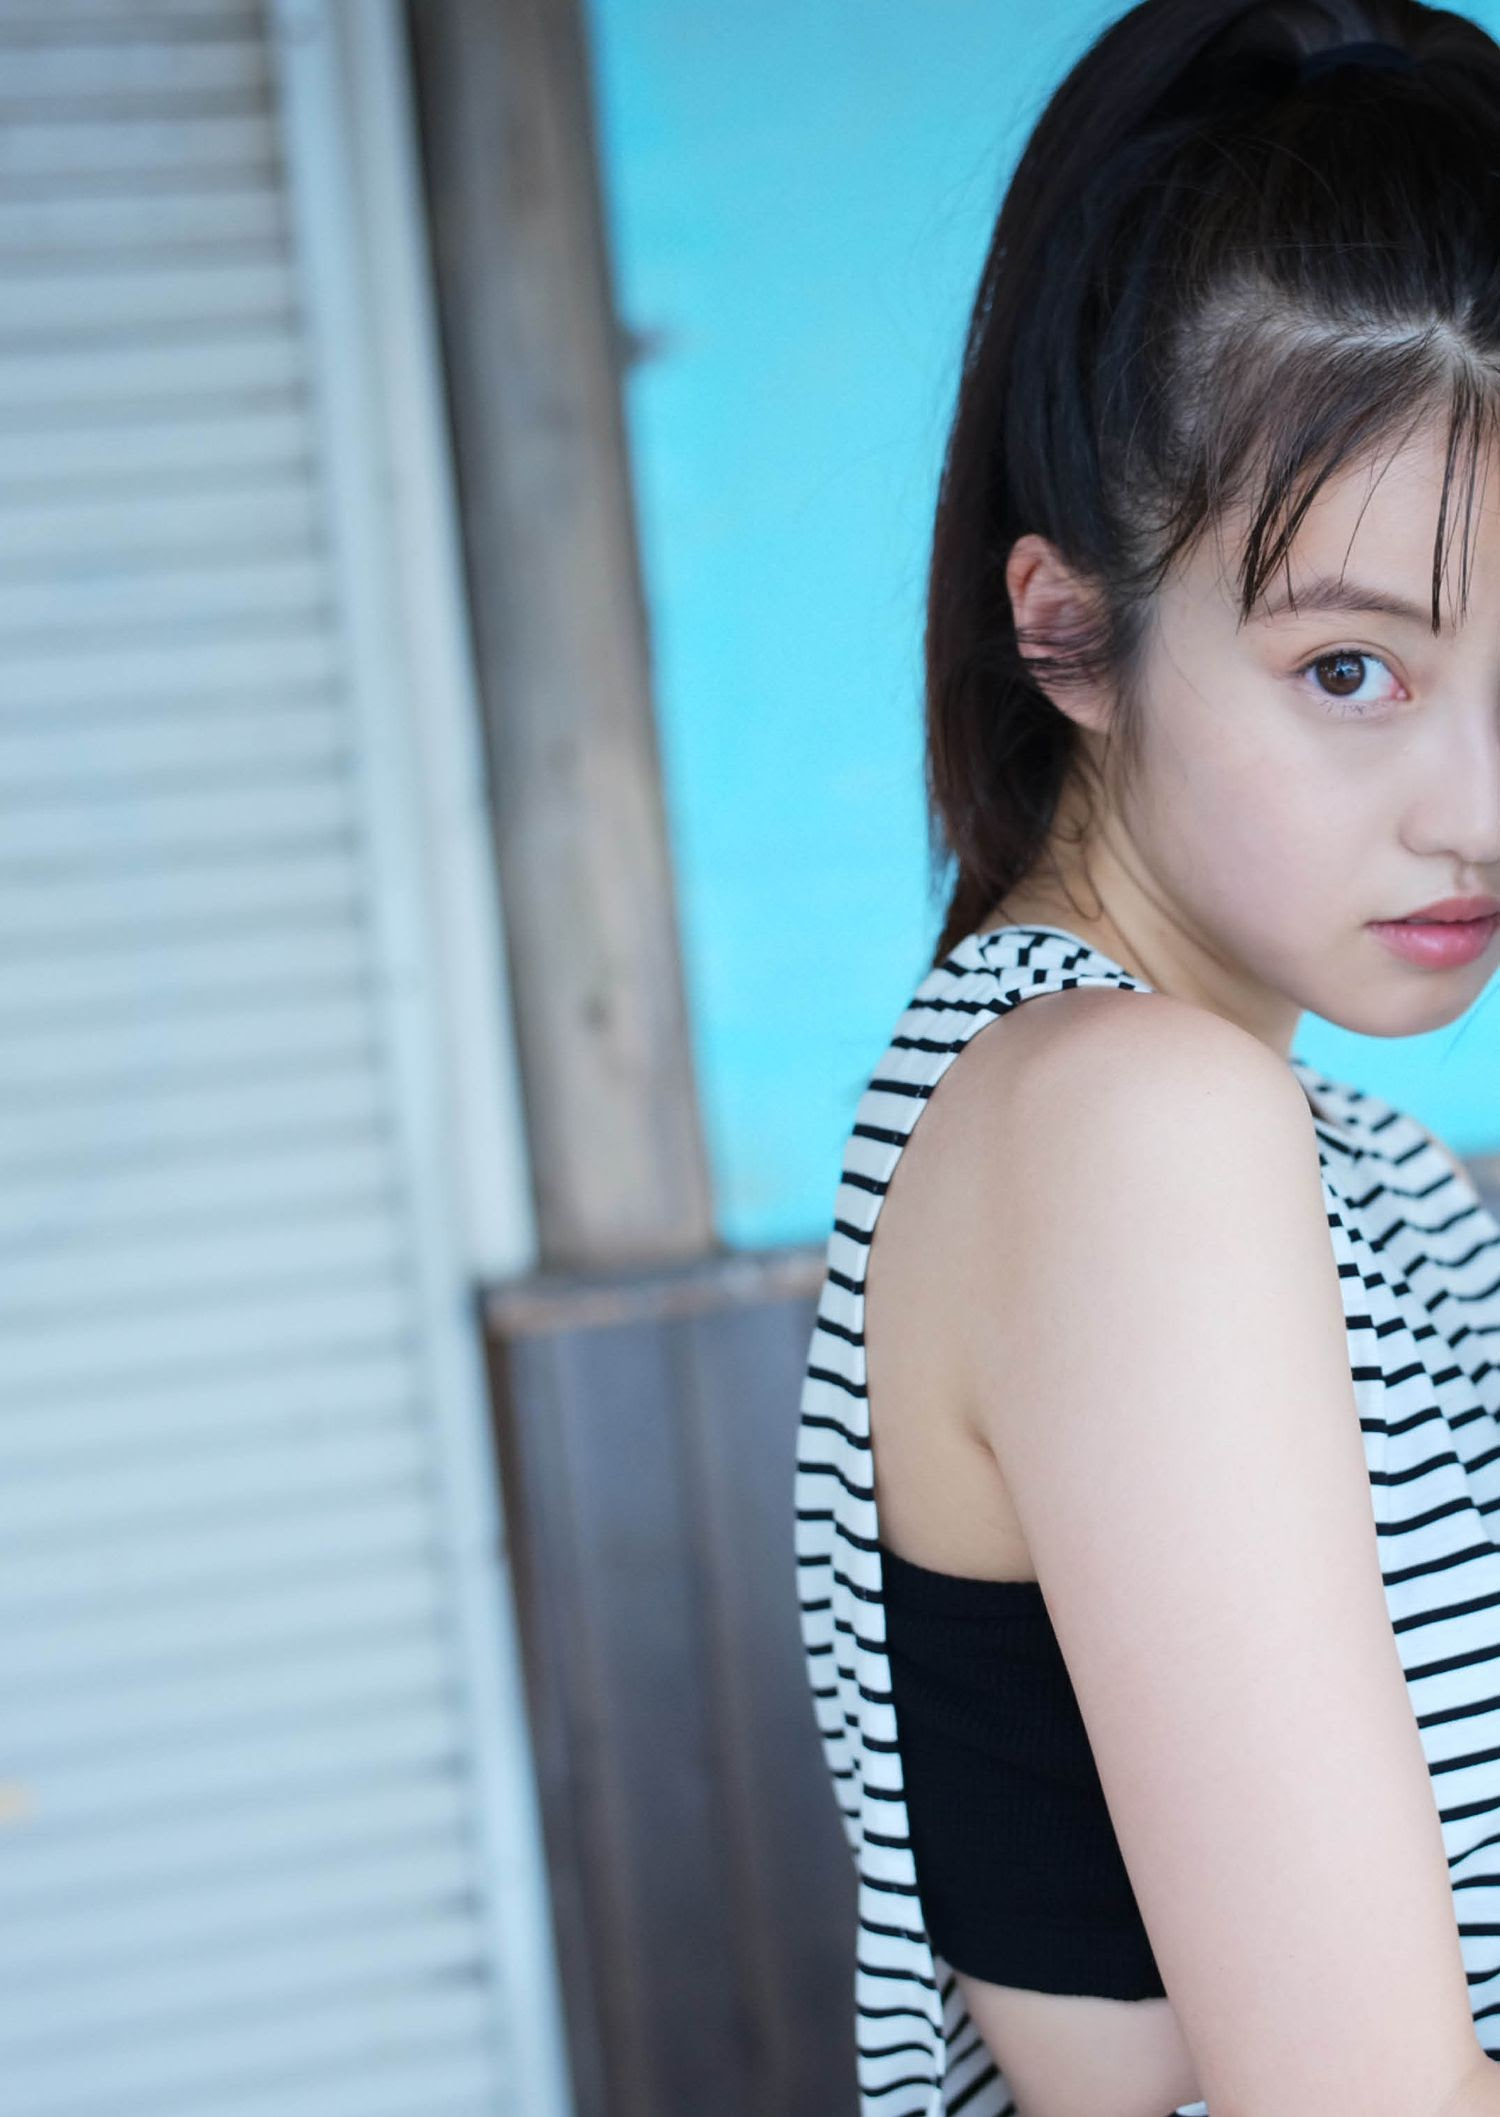 Without a doubt the youngest actress Mio Imada023